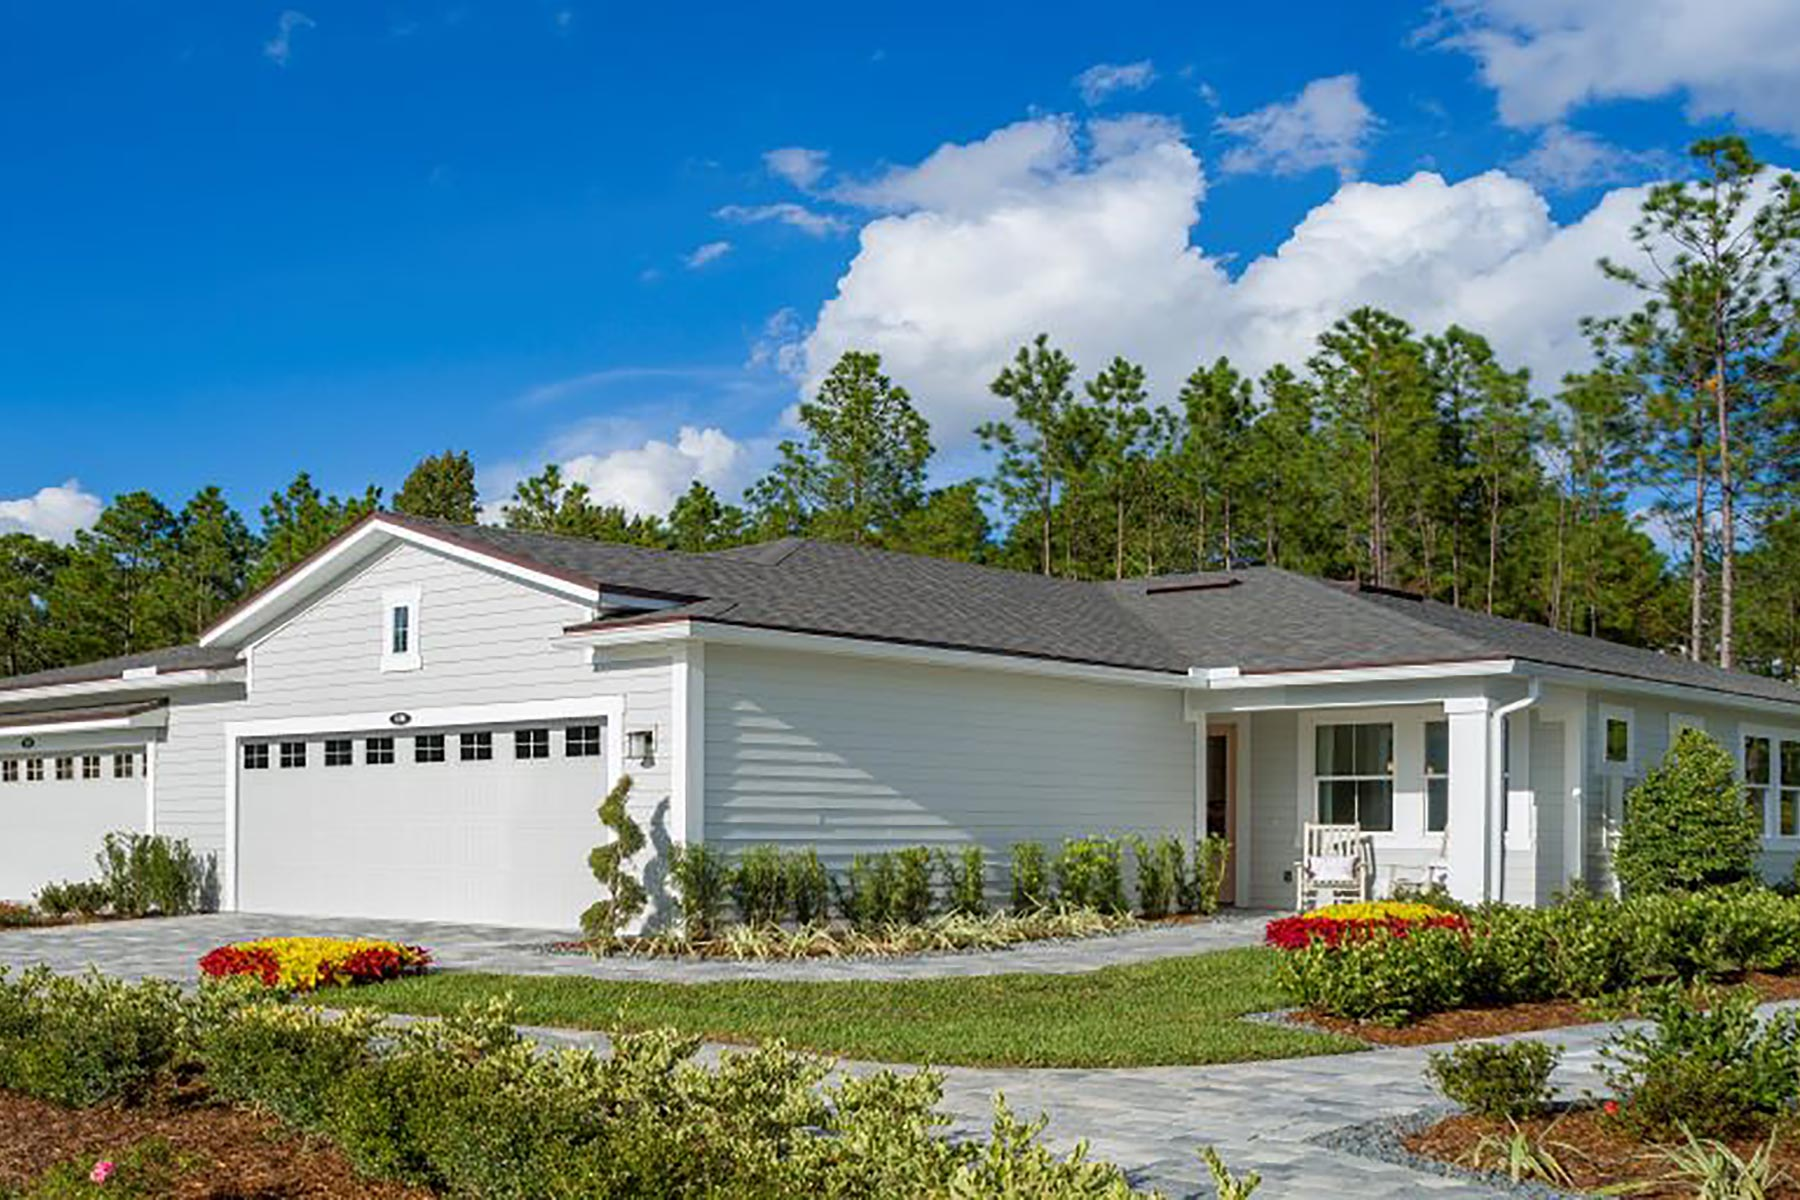 River Plan Elevation Front at RiverTown - WaterSong in St. Johns Florida by Mattamy Homes